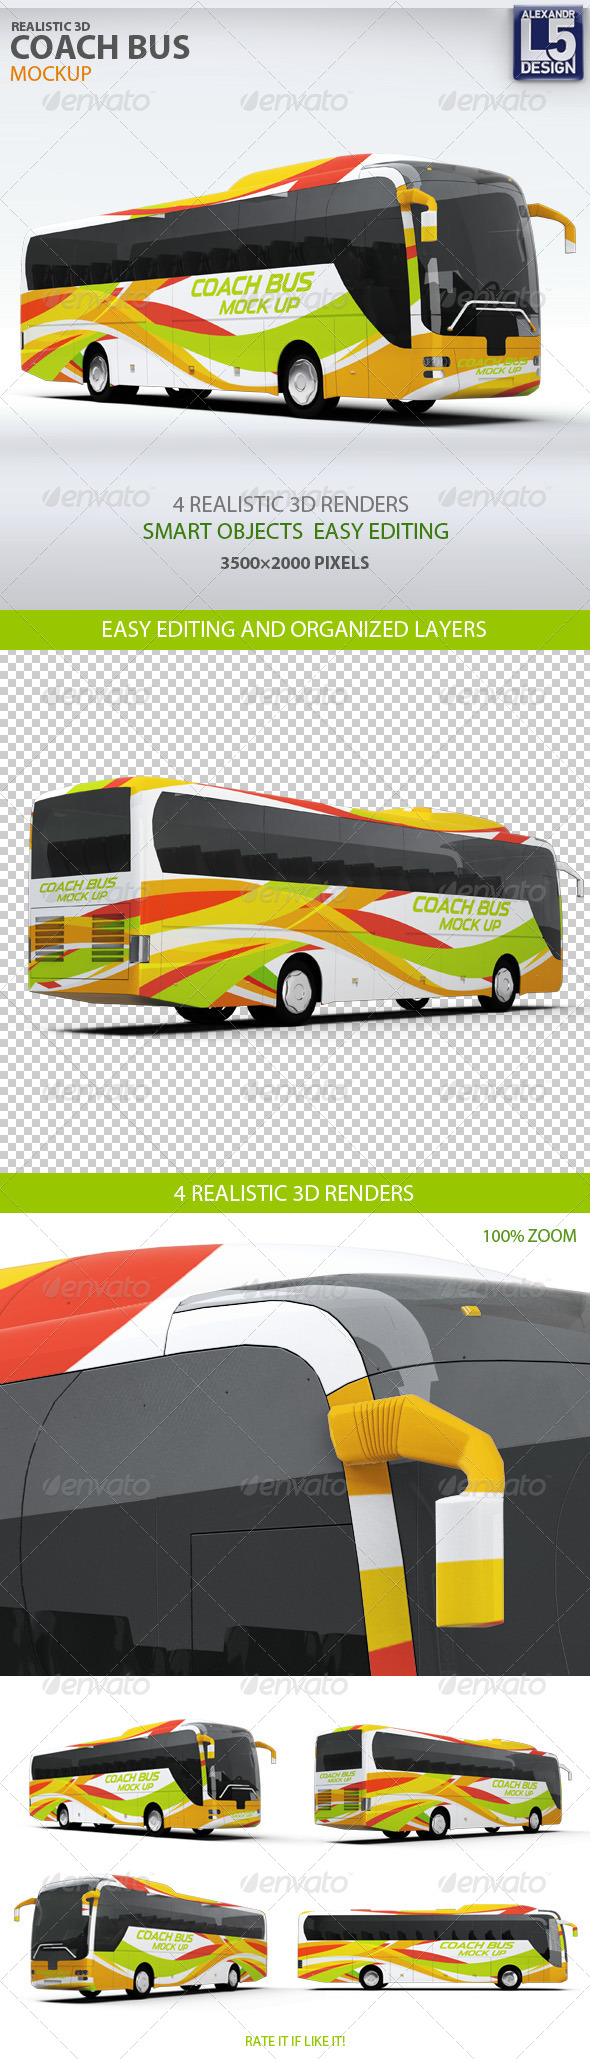 Bus Graphics, Designs & Templates from GraphicRiver